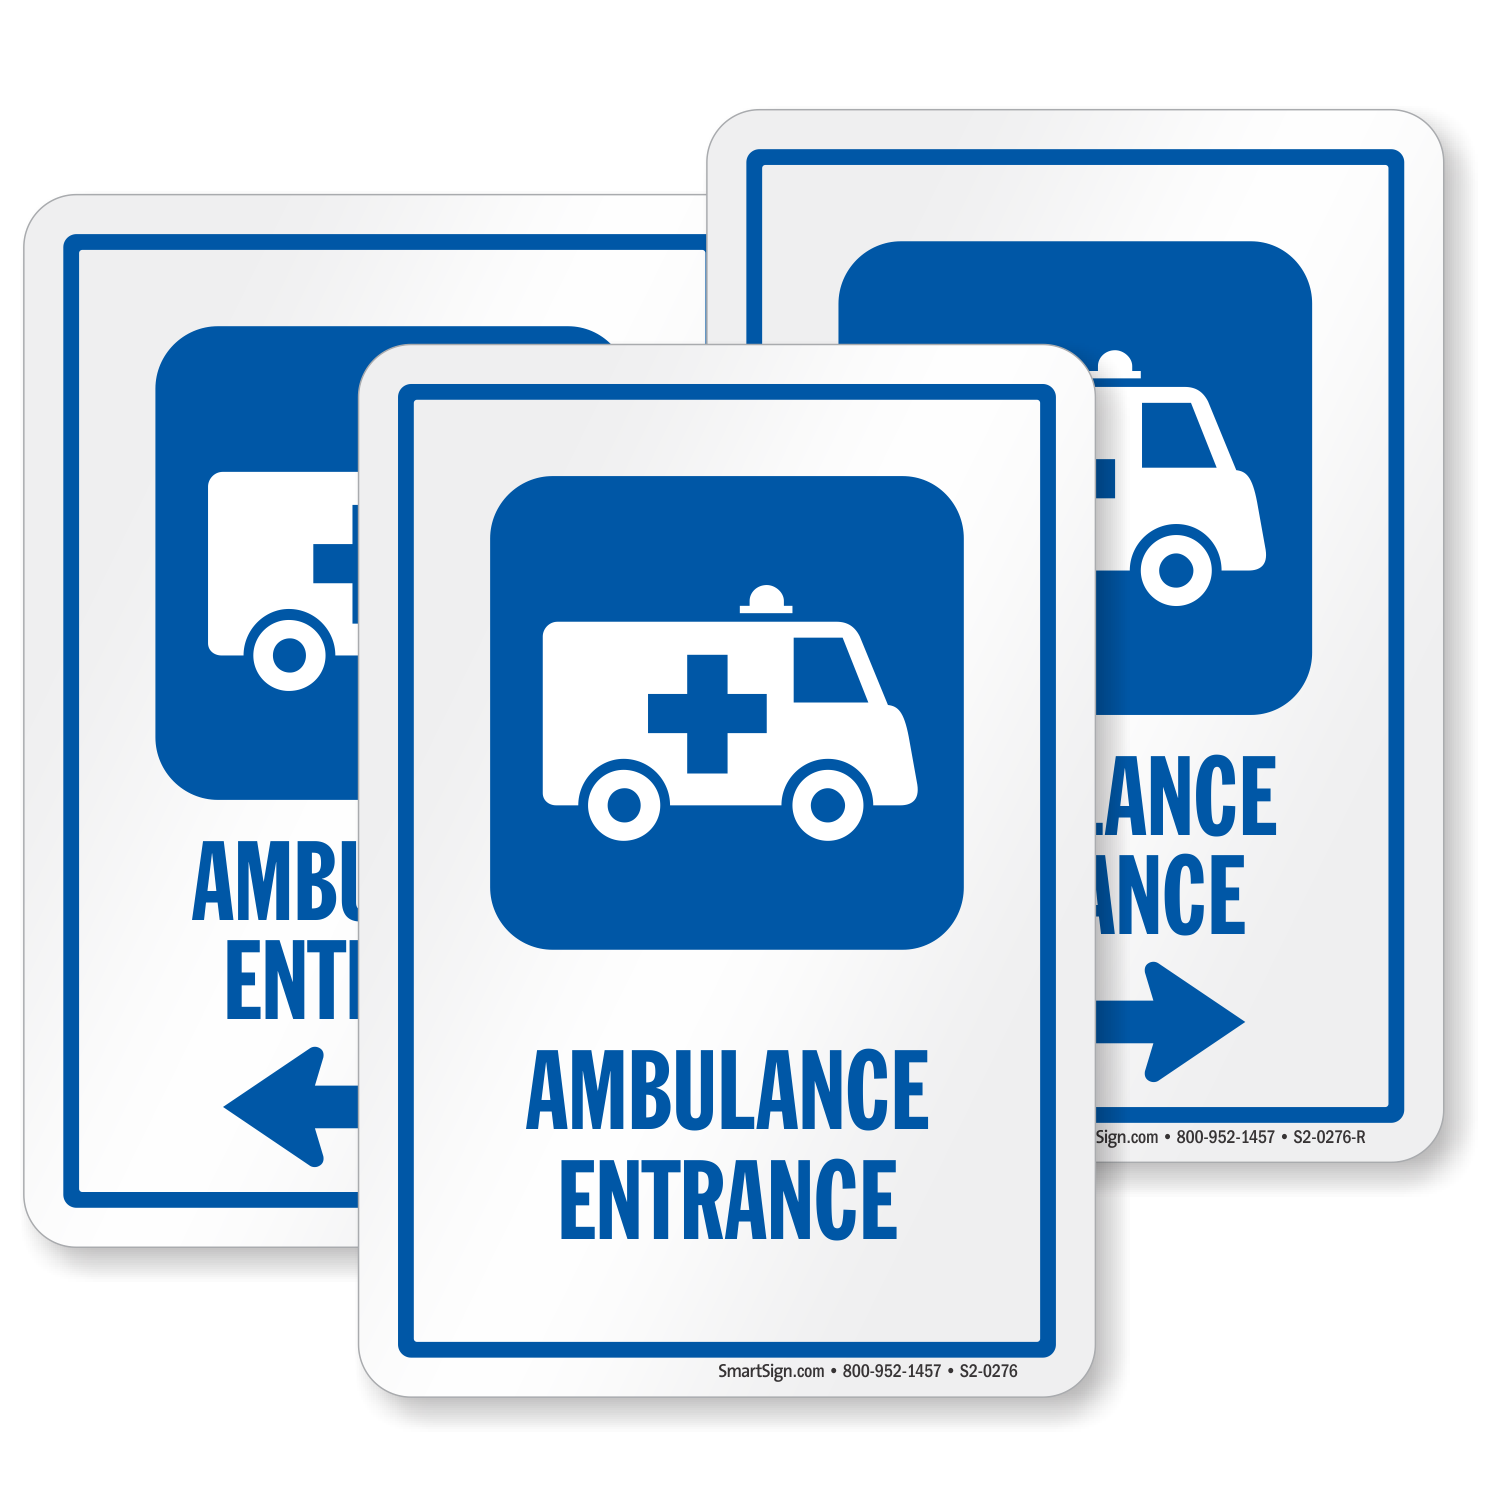 Ambulance Entrance Signs  Ambulance Entrance Door Signs. Empire State Building Security. Cool Aid Air Conditioning Assisted Living Mi. Checking Account Online No Deposit. Contract Management Certifications. Starting Wedding Planning Business. Moon Sign And Rising Sign Weed Addiction Help. Small Business Acounting Jim Stevens Auto Body. Culinary Schools Colorado Springs